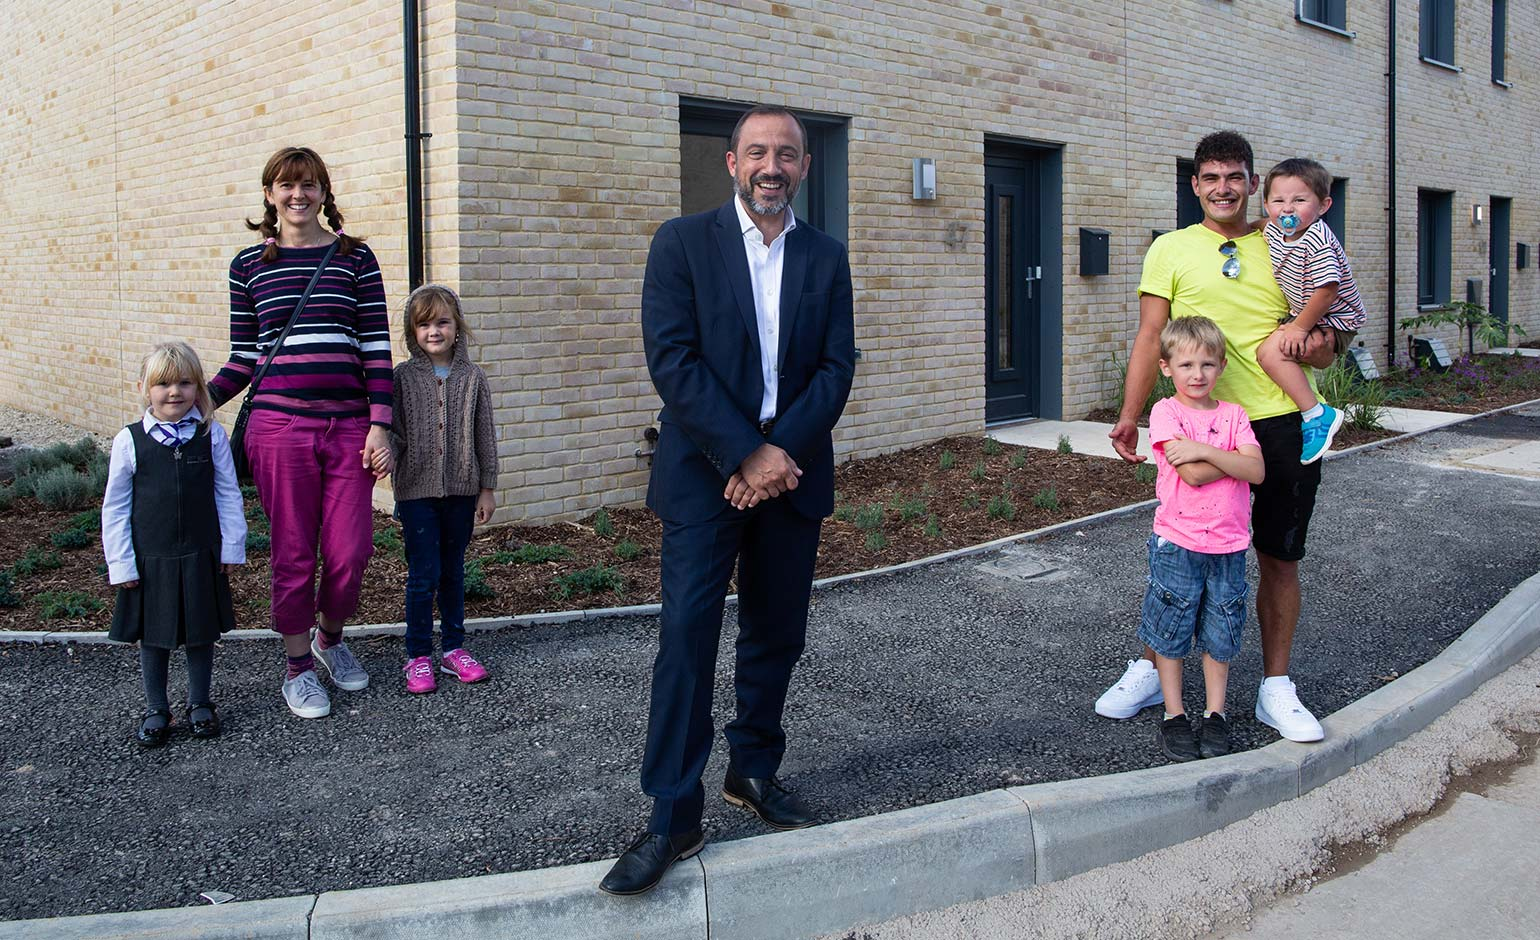 Local families helping to design energy-efficient homes of the future